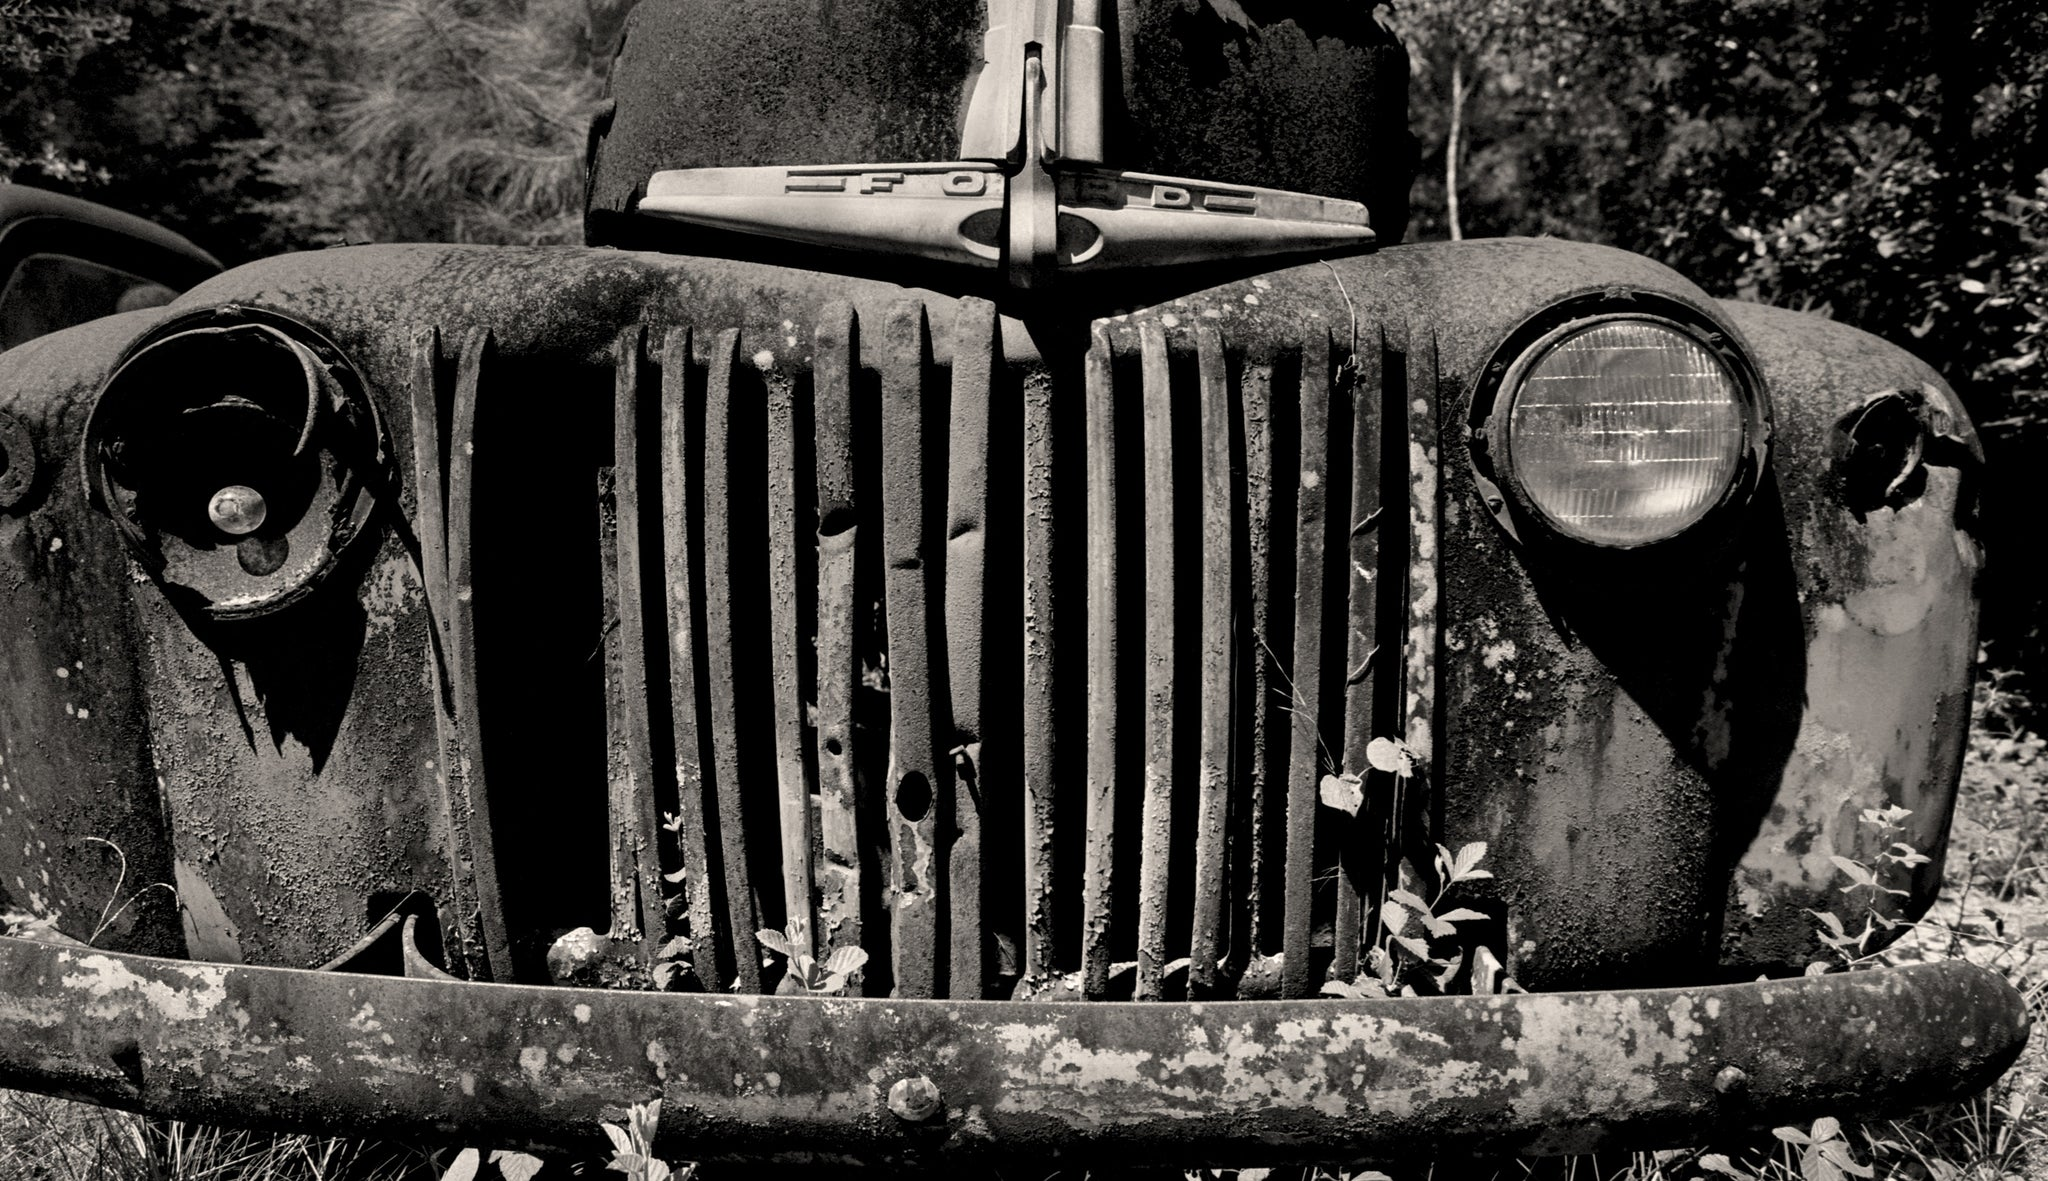 1947 ford f100 pickup truck black and white photo